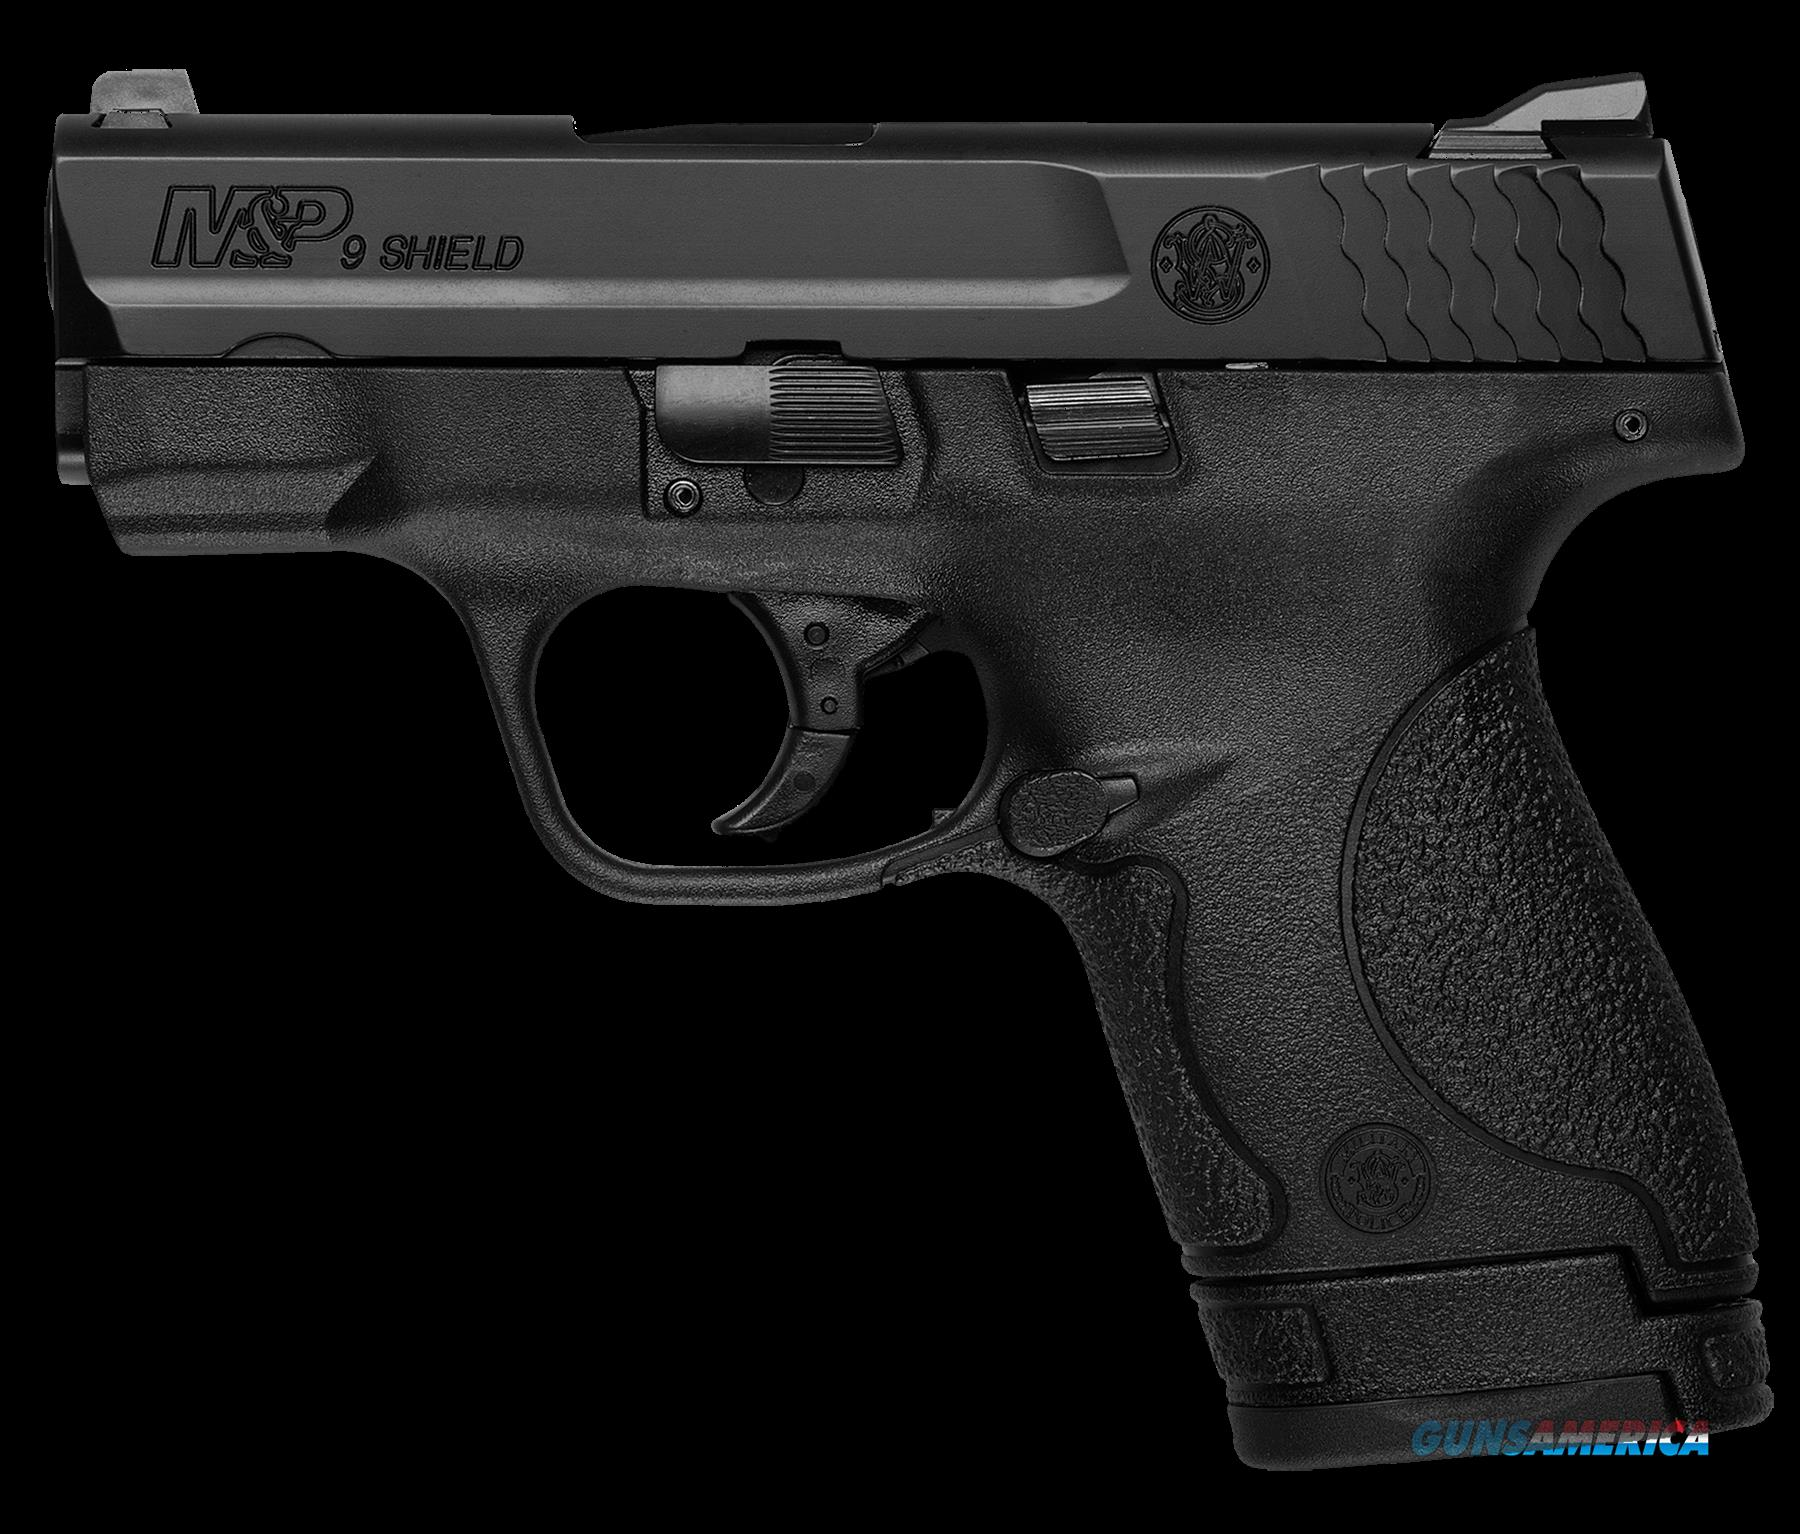 "Smith & Wesson 10038 M&P 9 Shield *MA Compliant* Double 9mm Luger 3.1"" 7+1/8+1 Black Polymer  Guns > Pistols > Smith & Wesson Pistols - Autos > Shield"